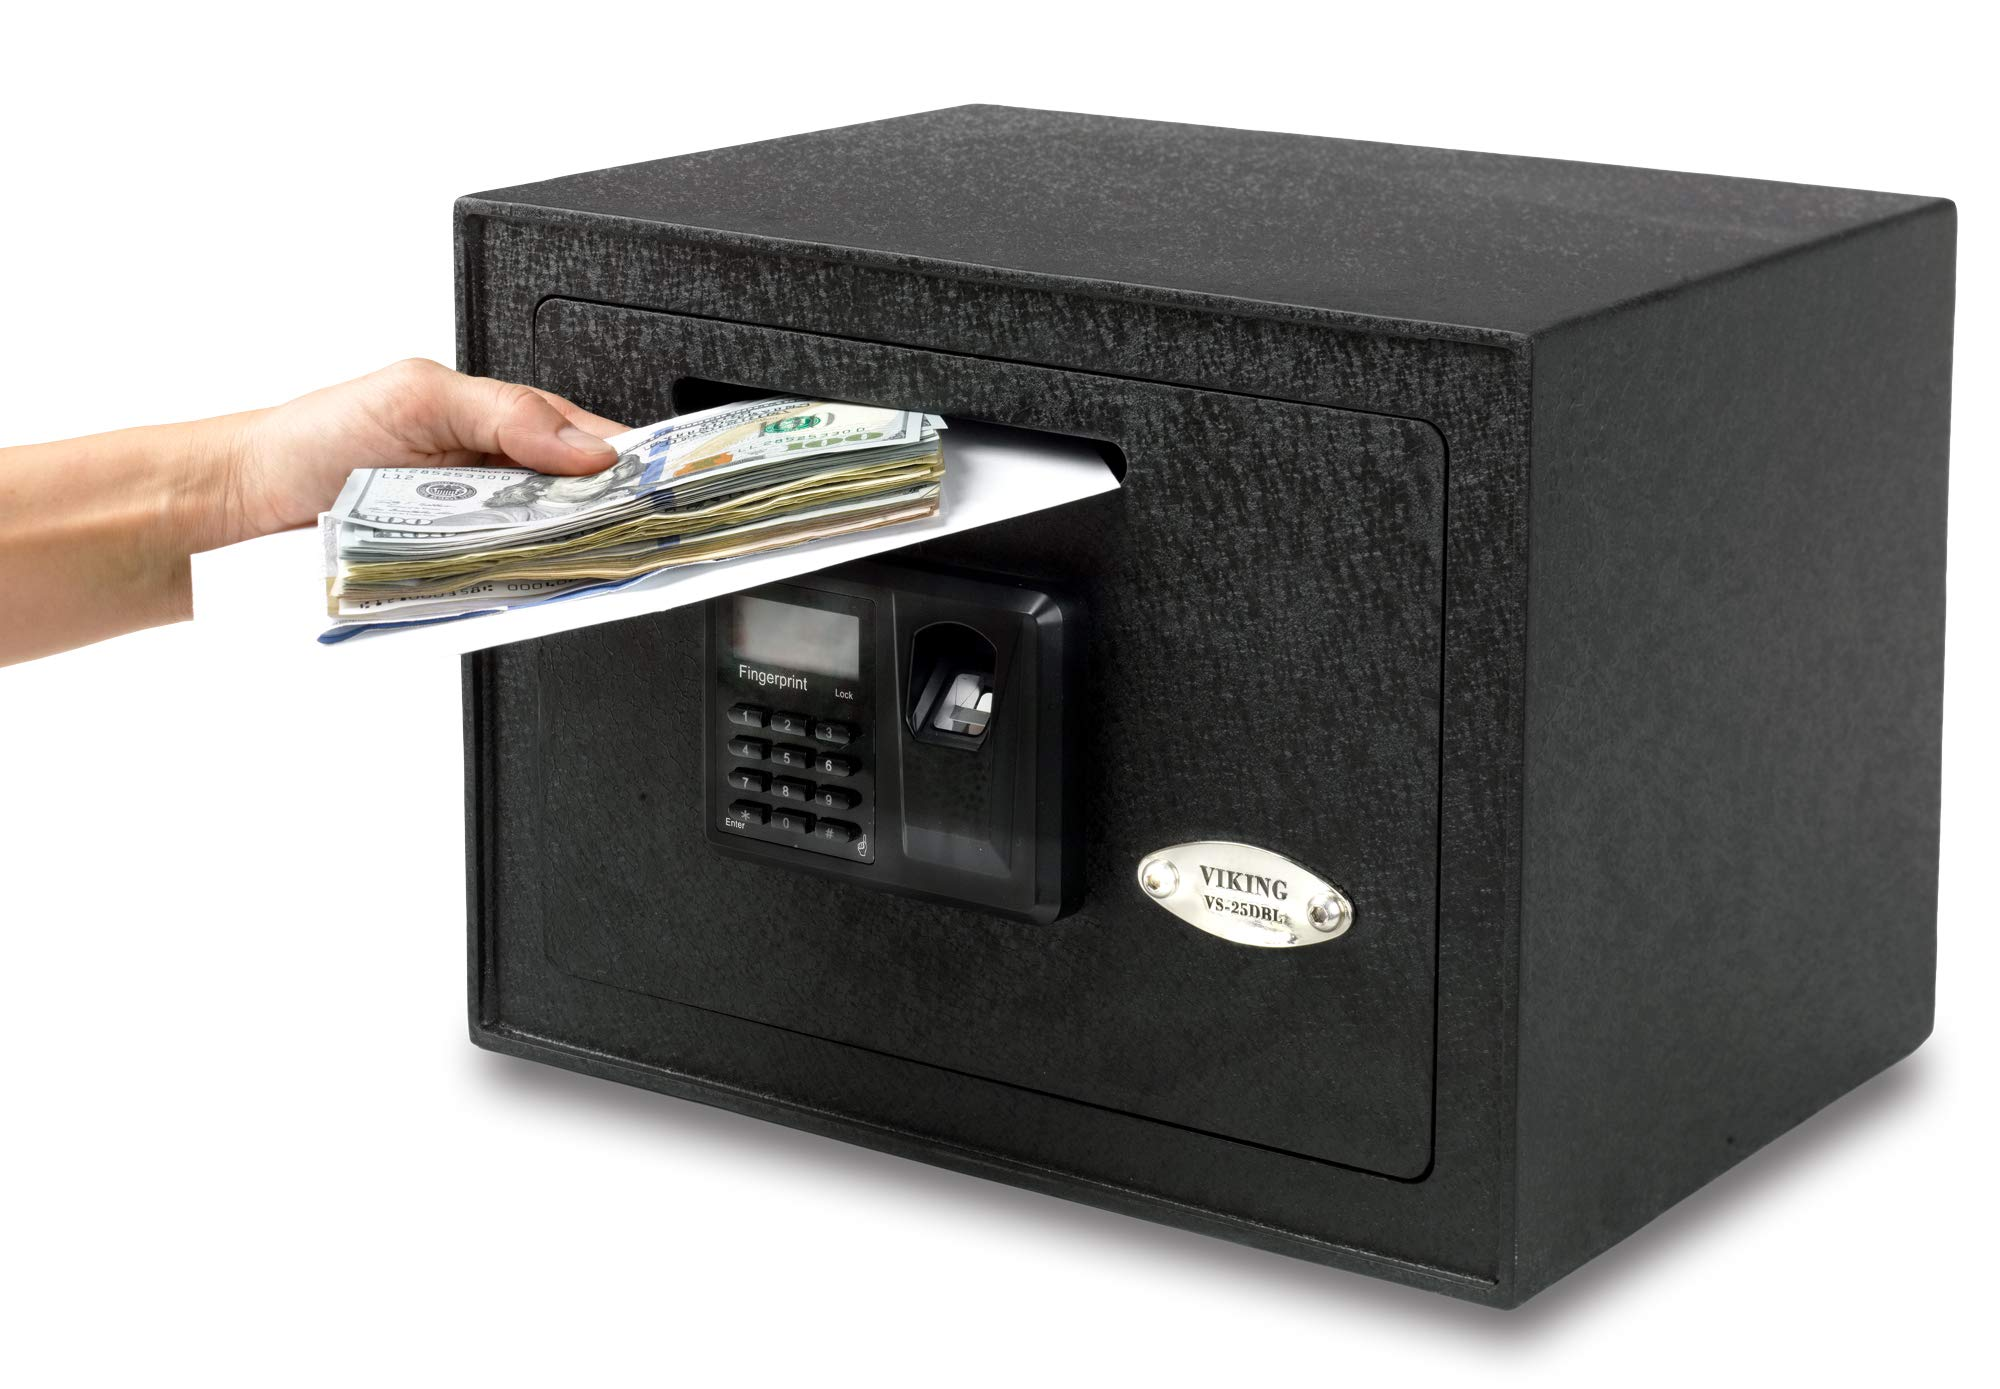 Viking Security Safe VS-25DBLX Depository Biometric Safe Fingerprint Safe Small Drop Slot Safe